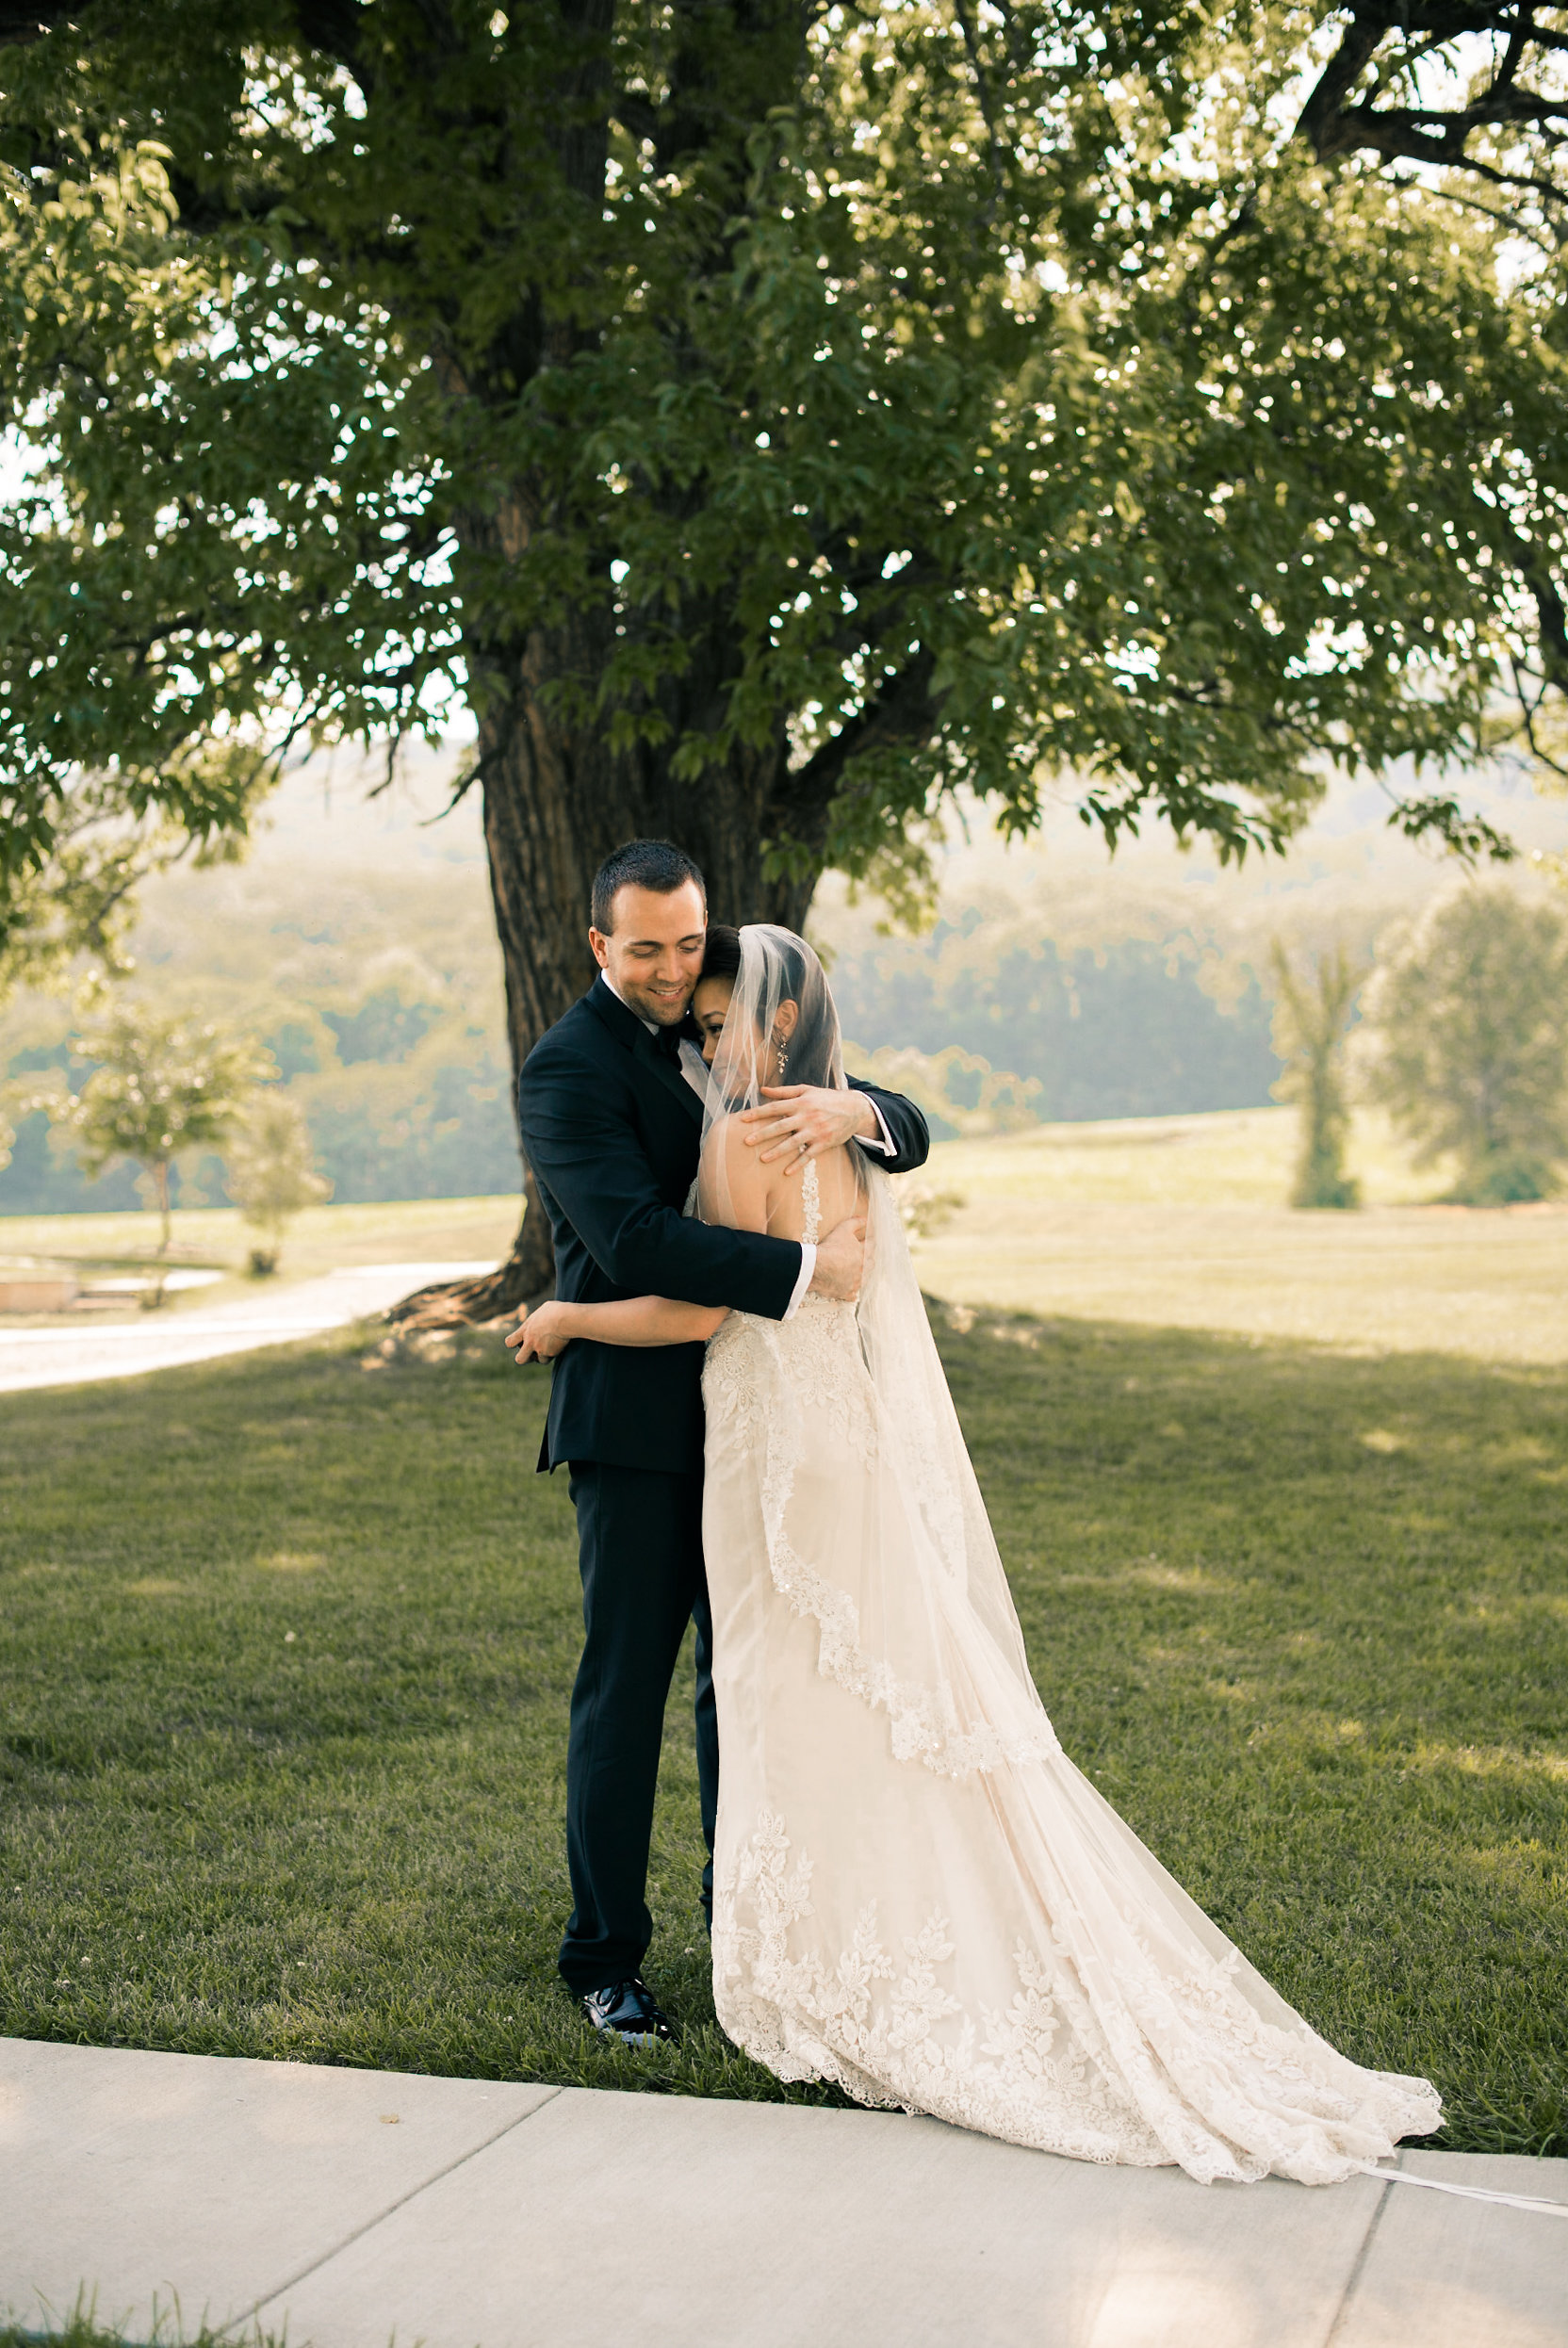 Bride and groom embrace under tree